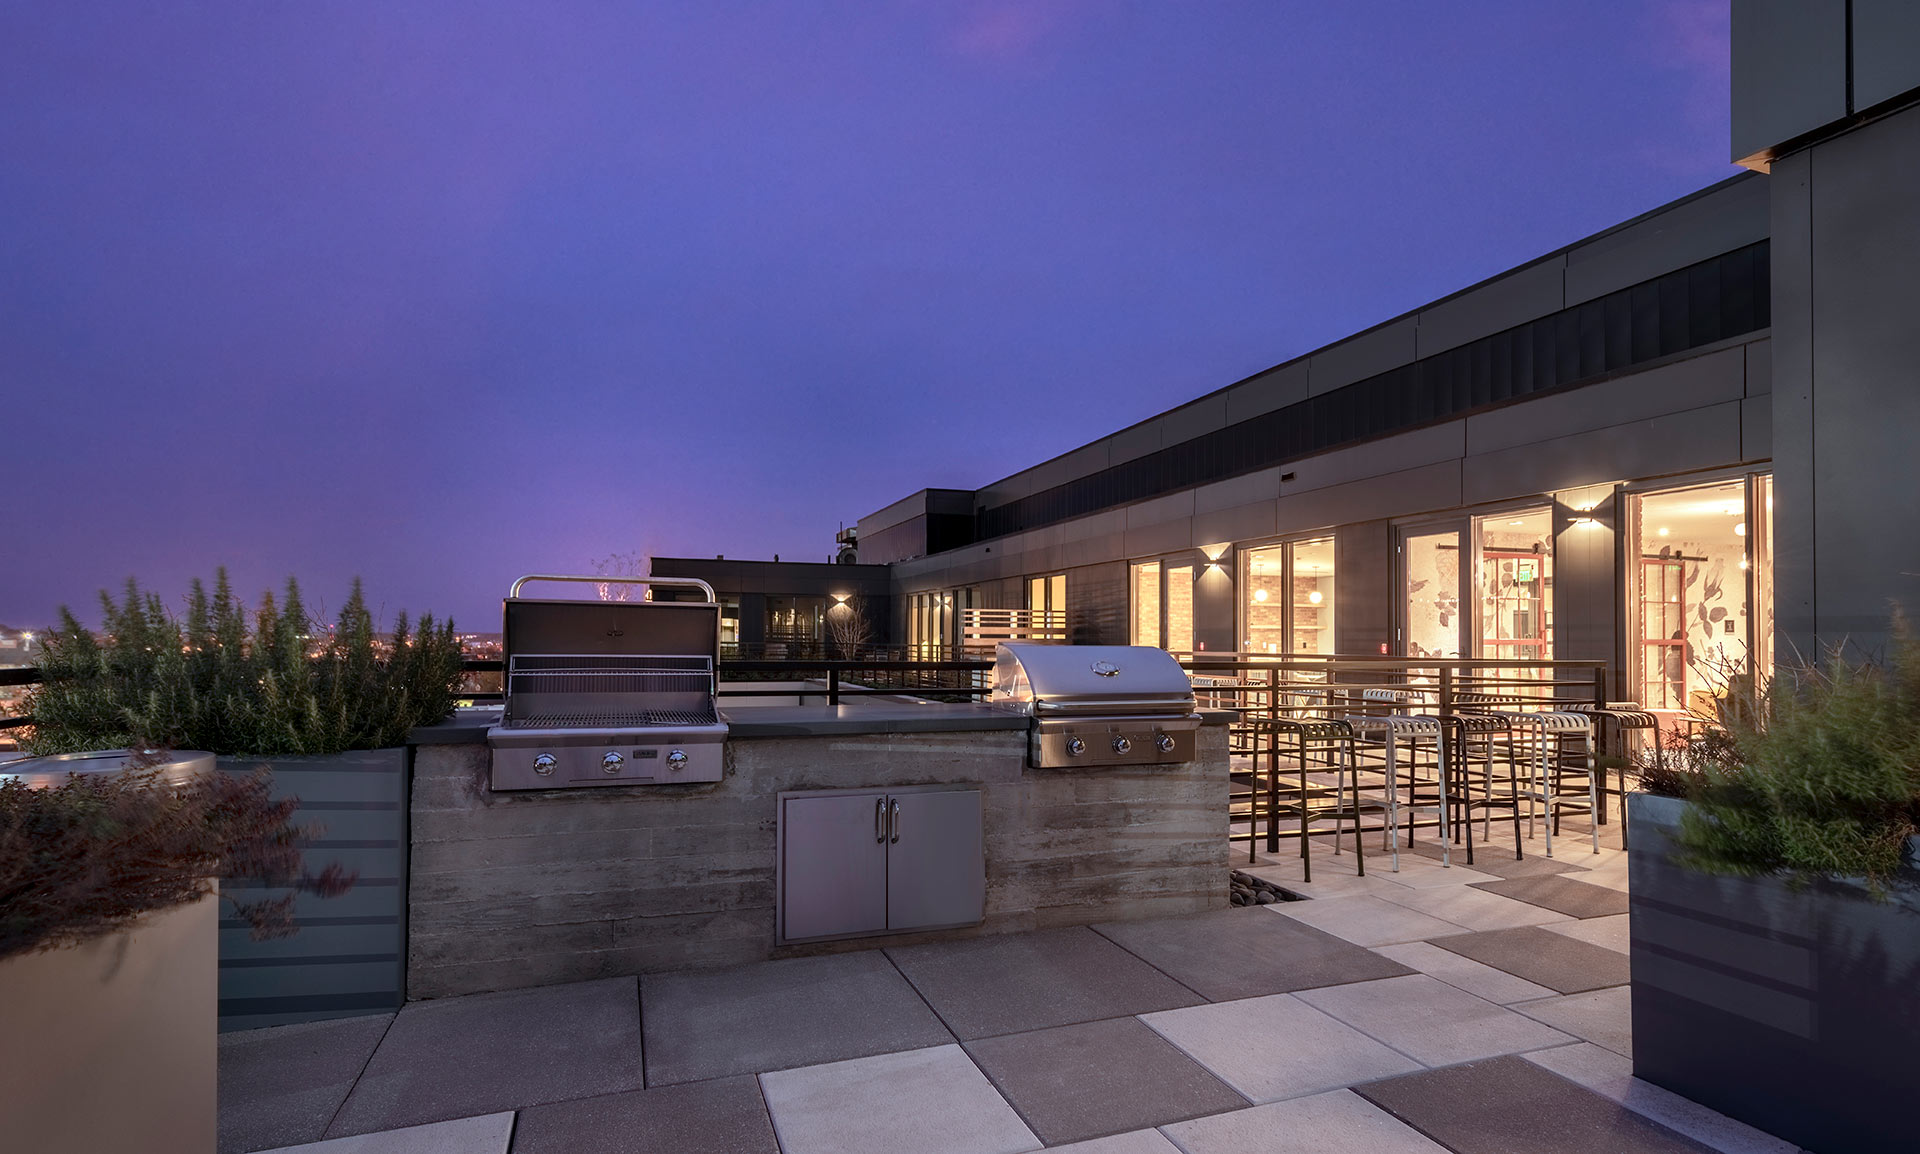 rooftop grilling stations